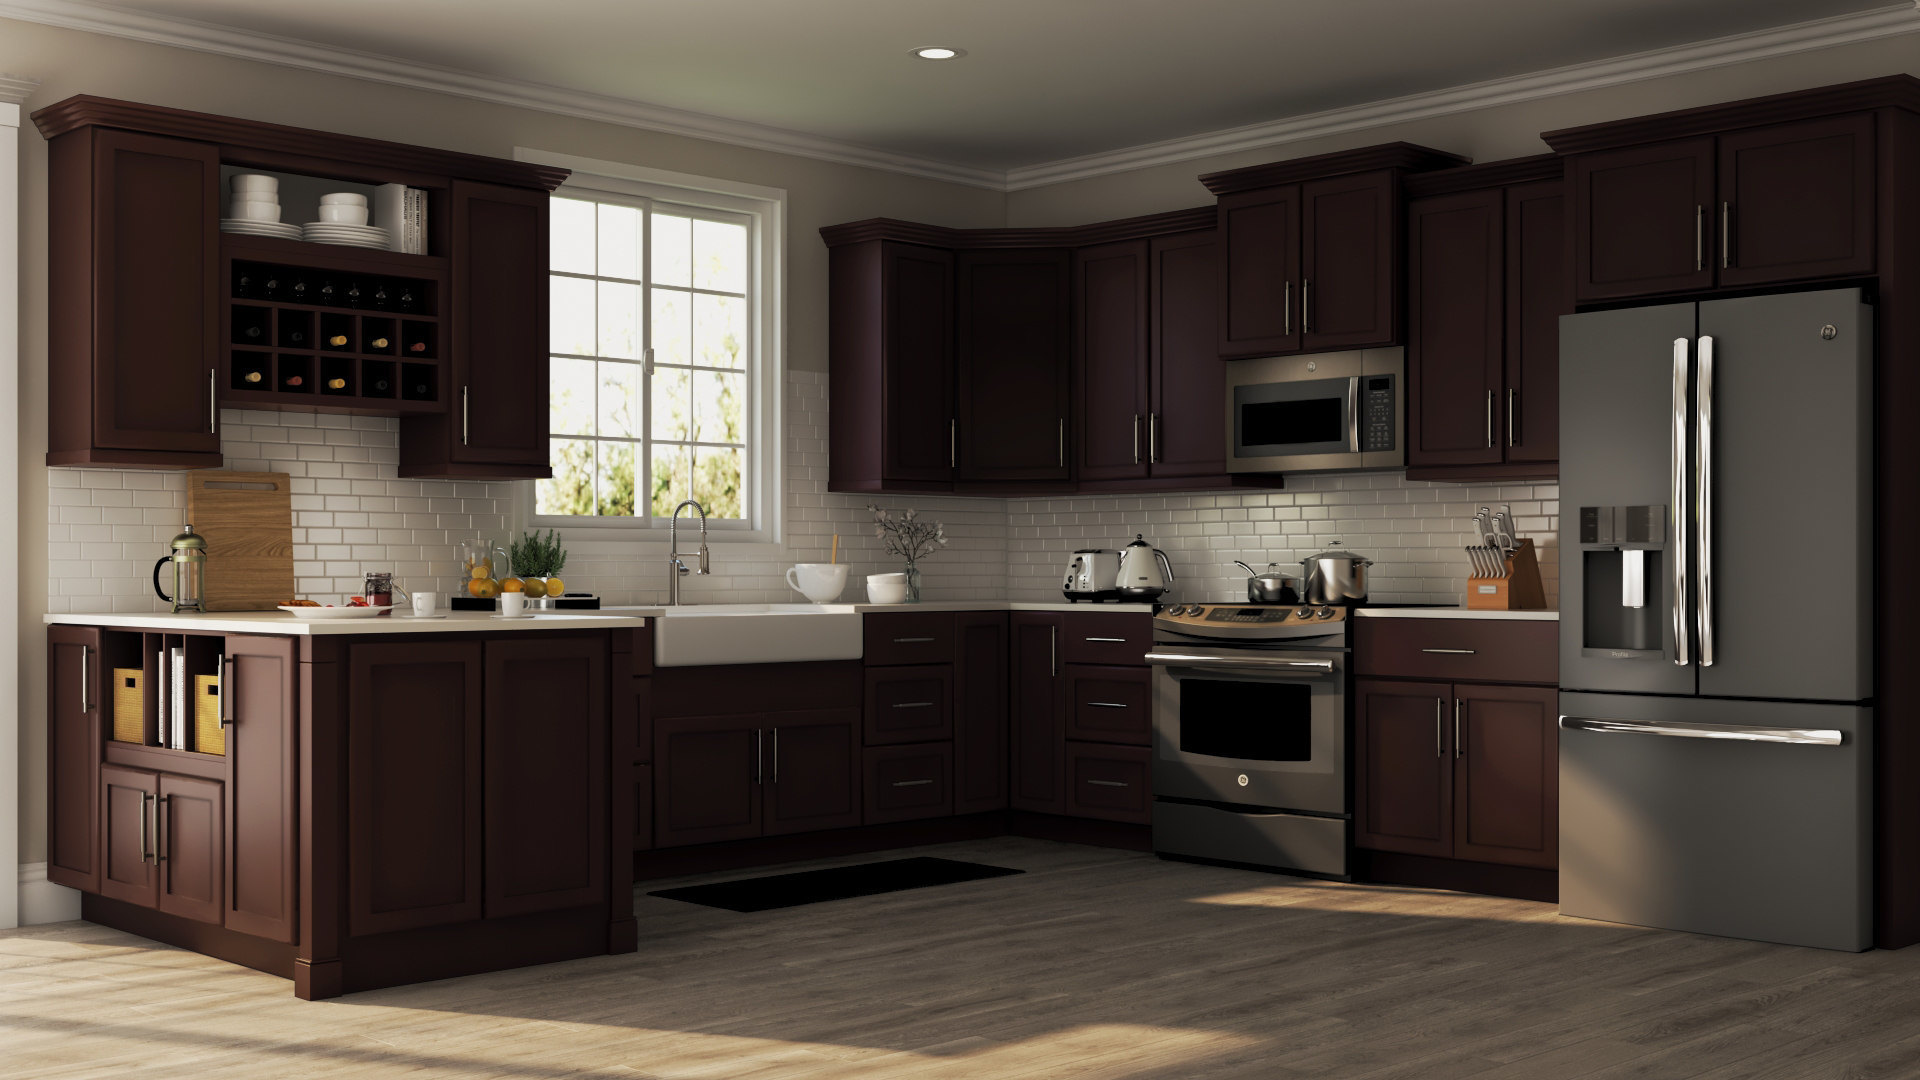 Shaker Java Coordinating Cabinet Hardware Kitchen The